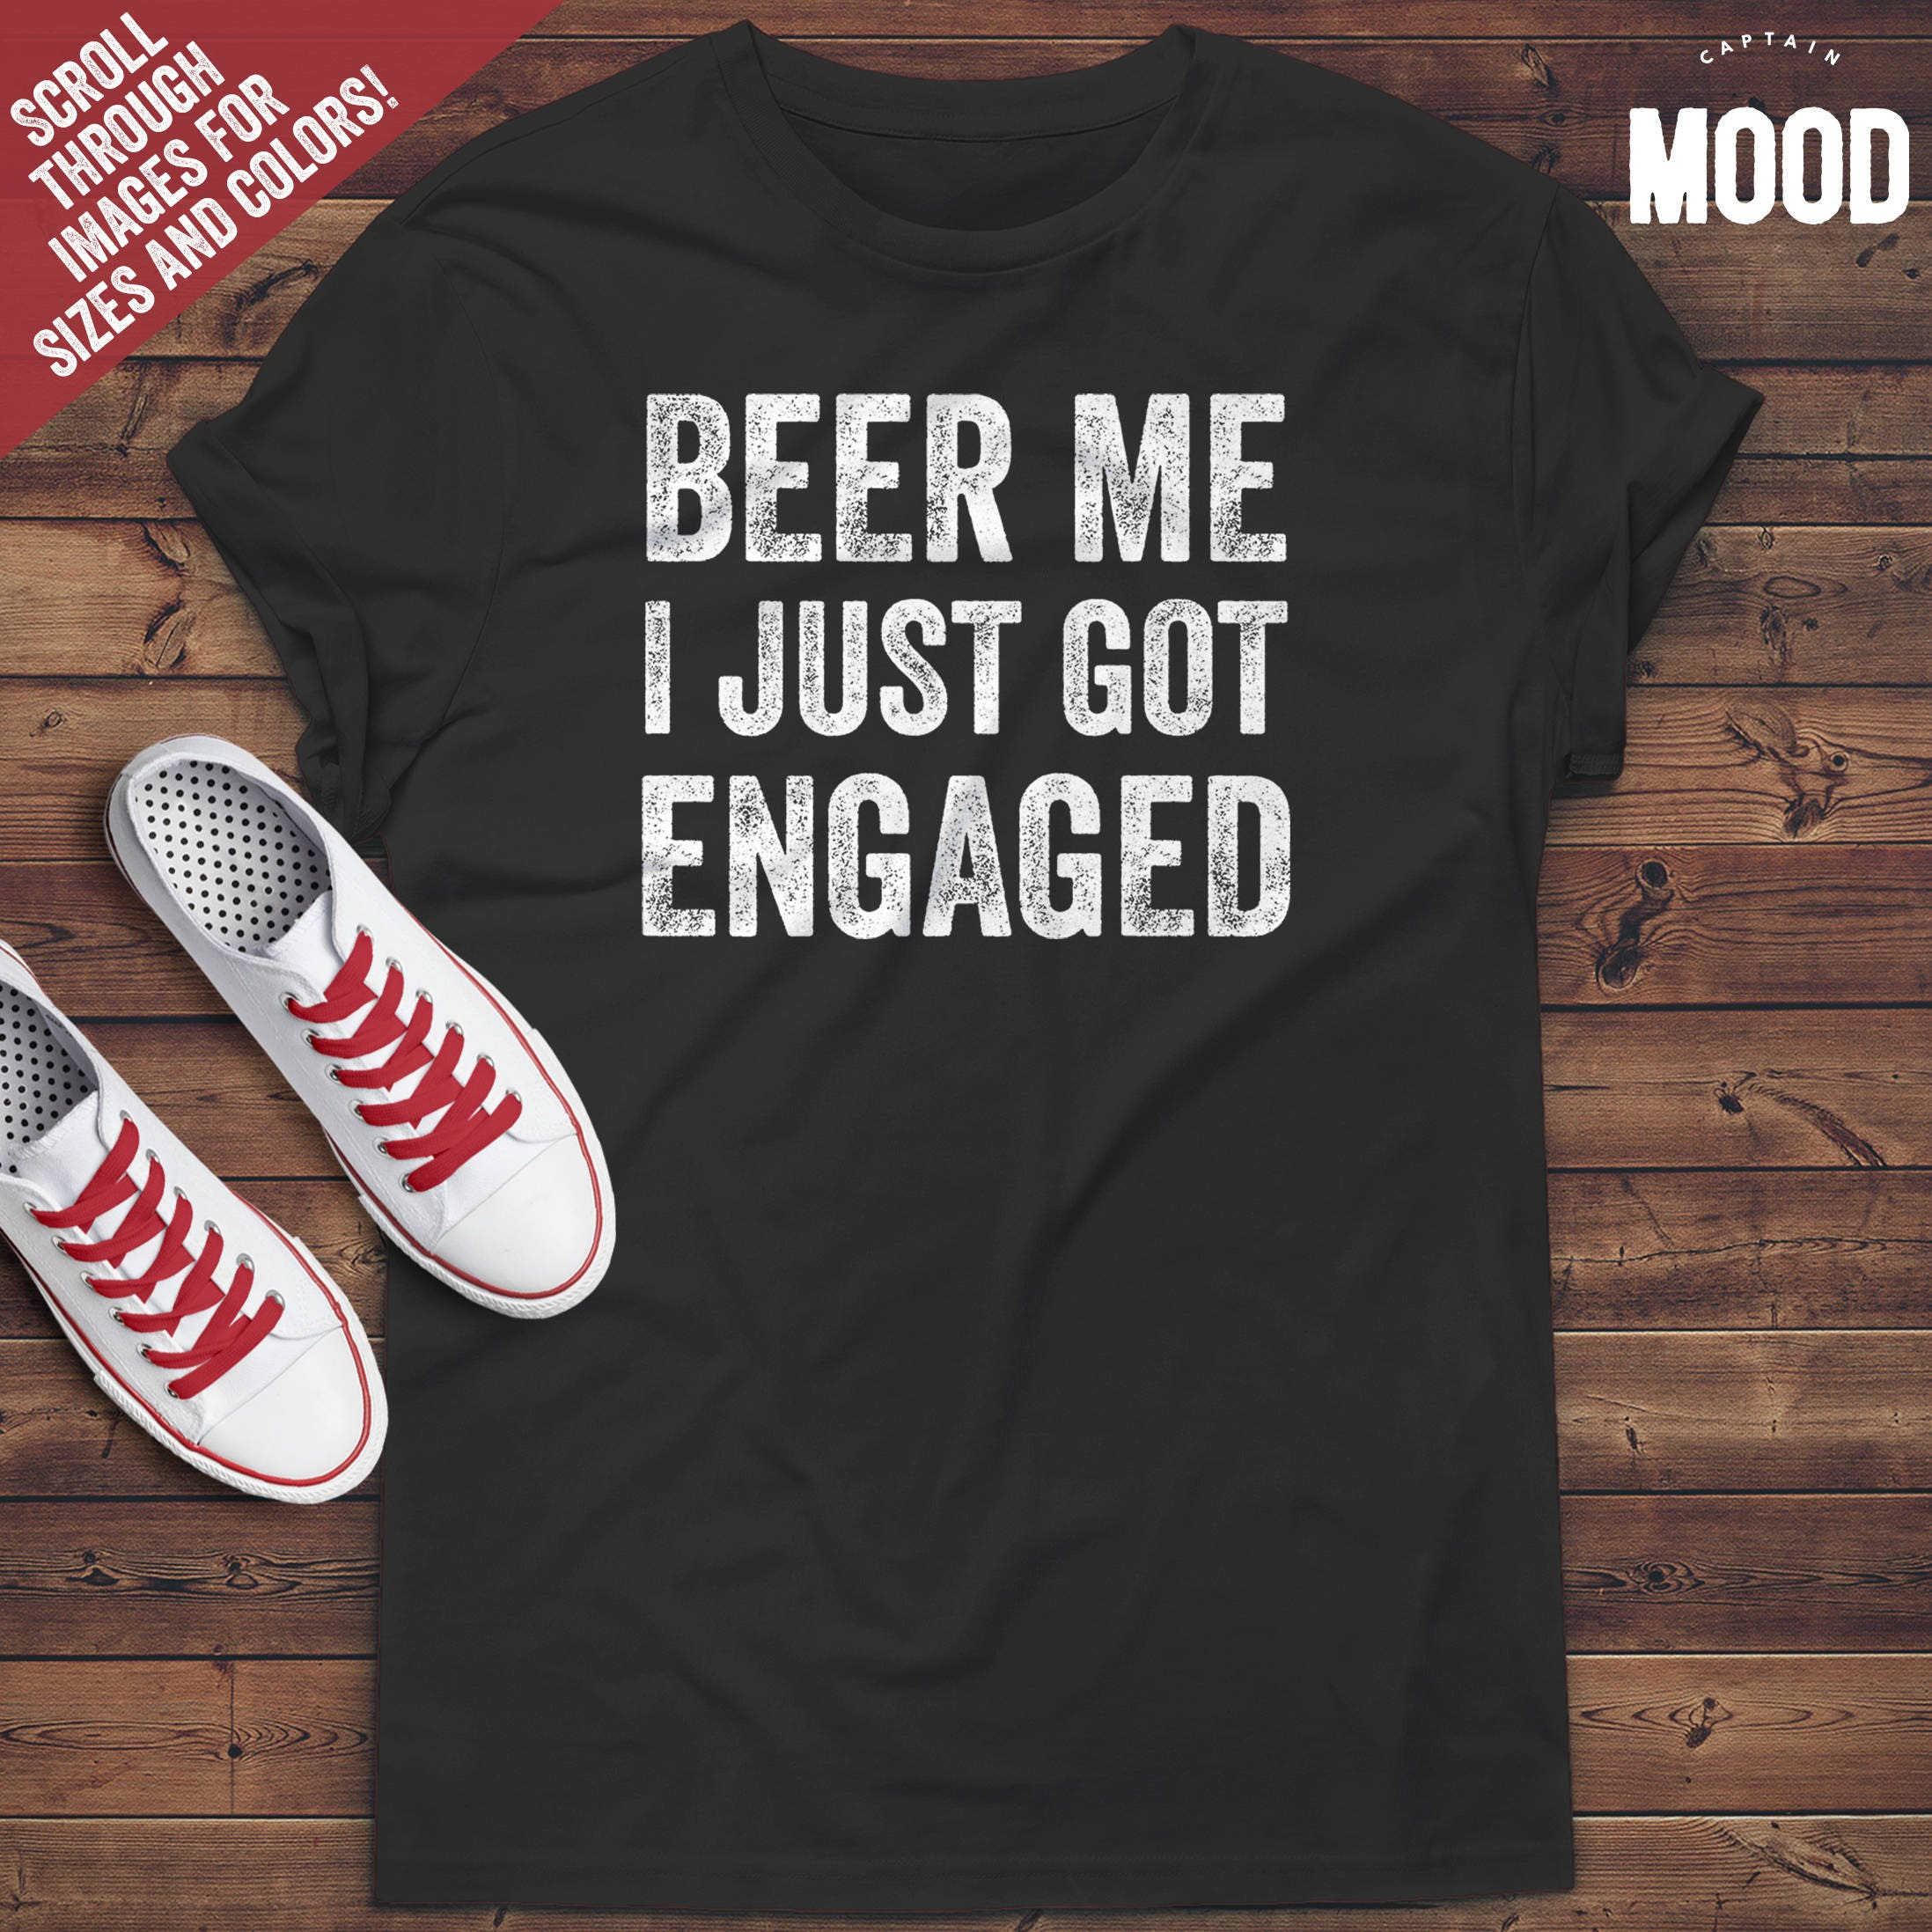 Just Got Engaged Now What: Beer Me I Just Got Engaged T-Shirt Engagement T-shirt